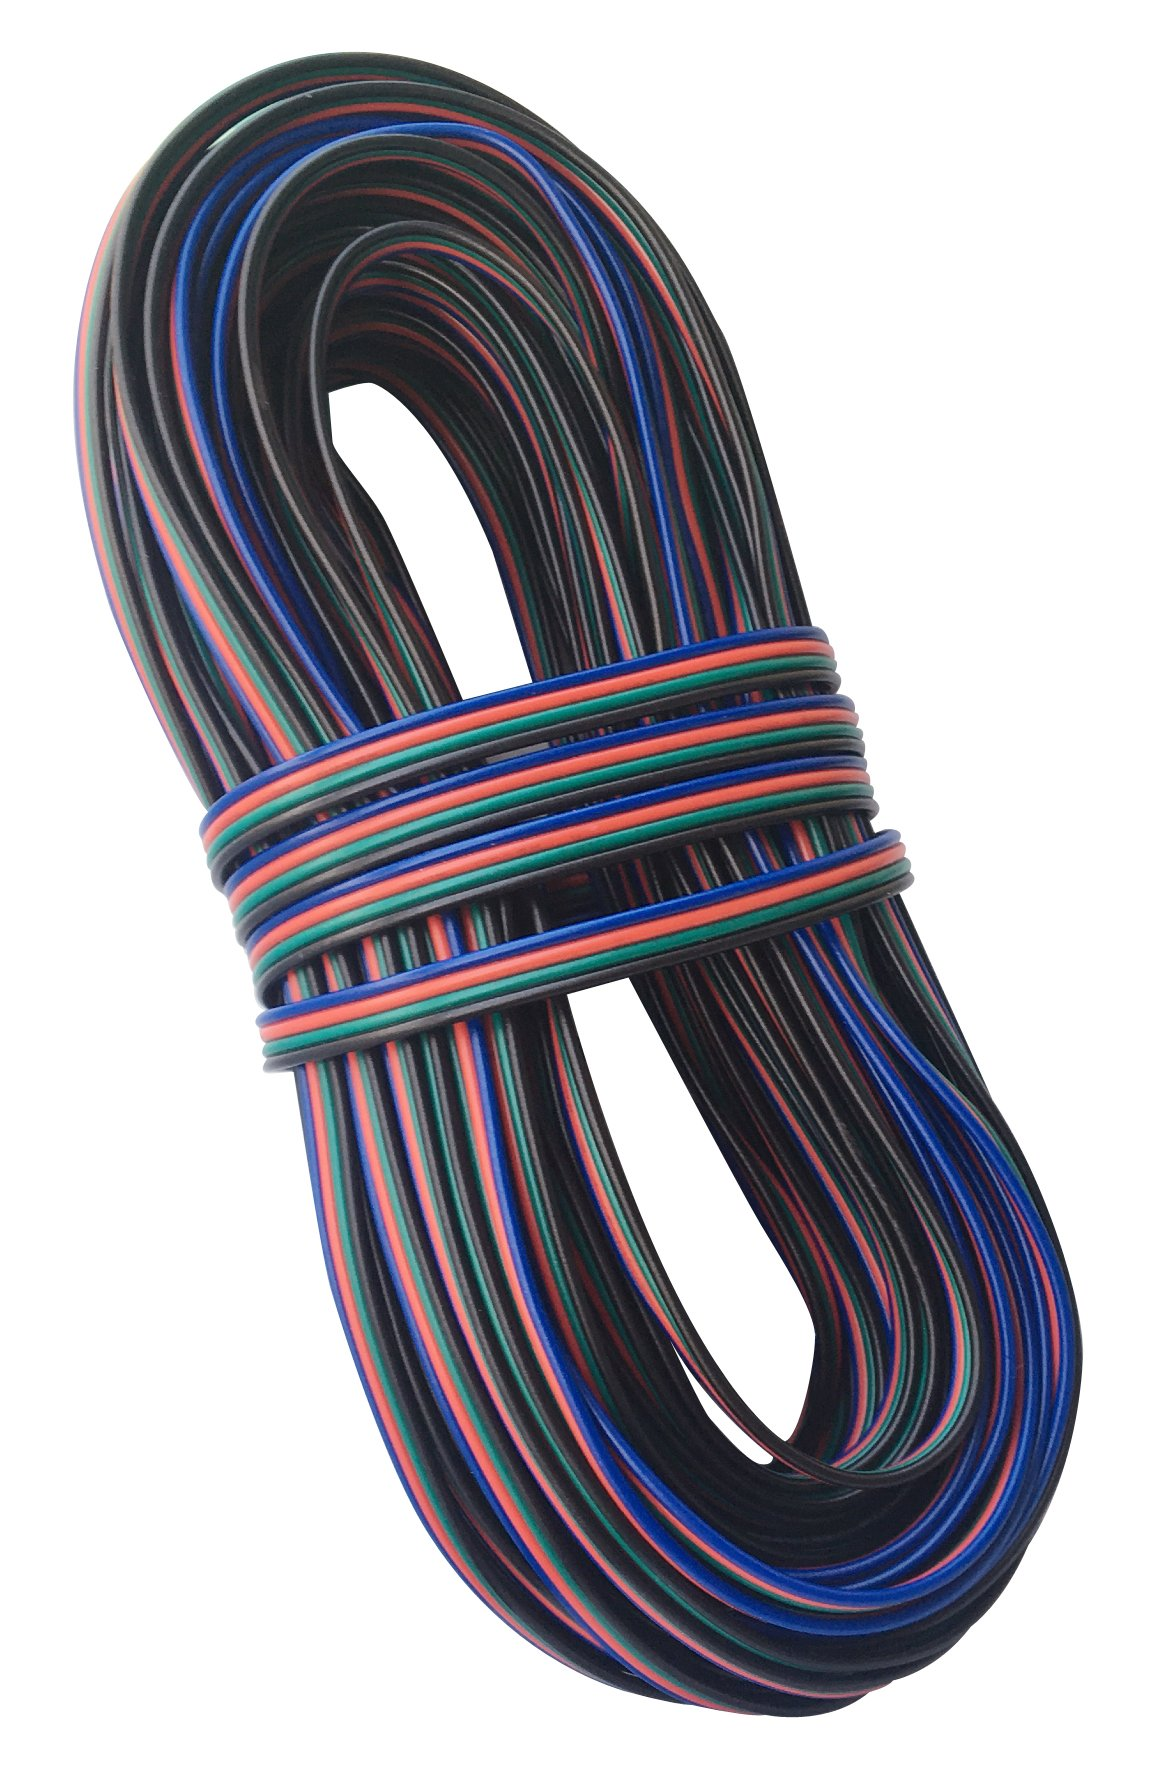 Ksmile 4 Color 66ft 20m RGB Extension Cable Line for LED Strip RGB 5050 3528 Cord 4pin 66 Feet